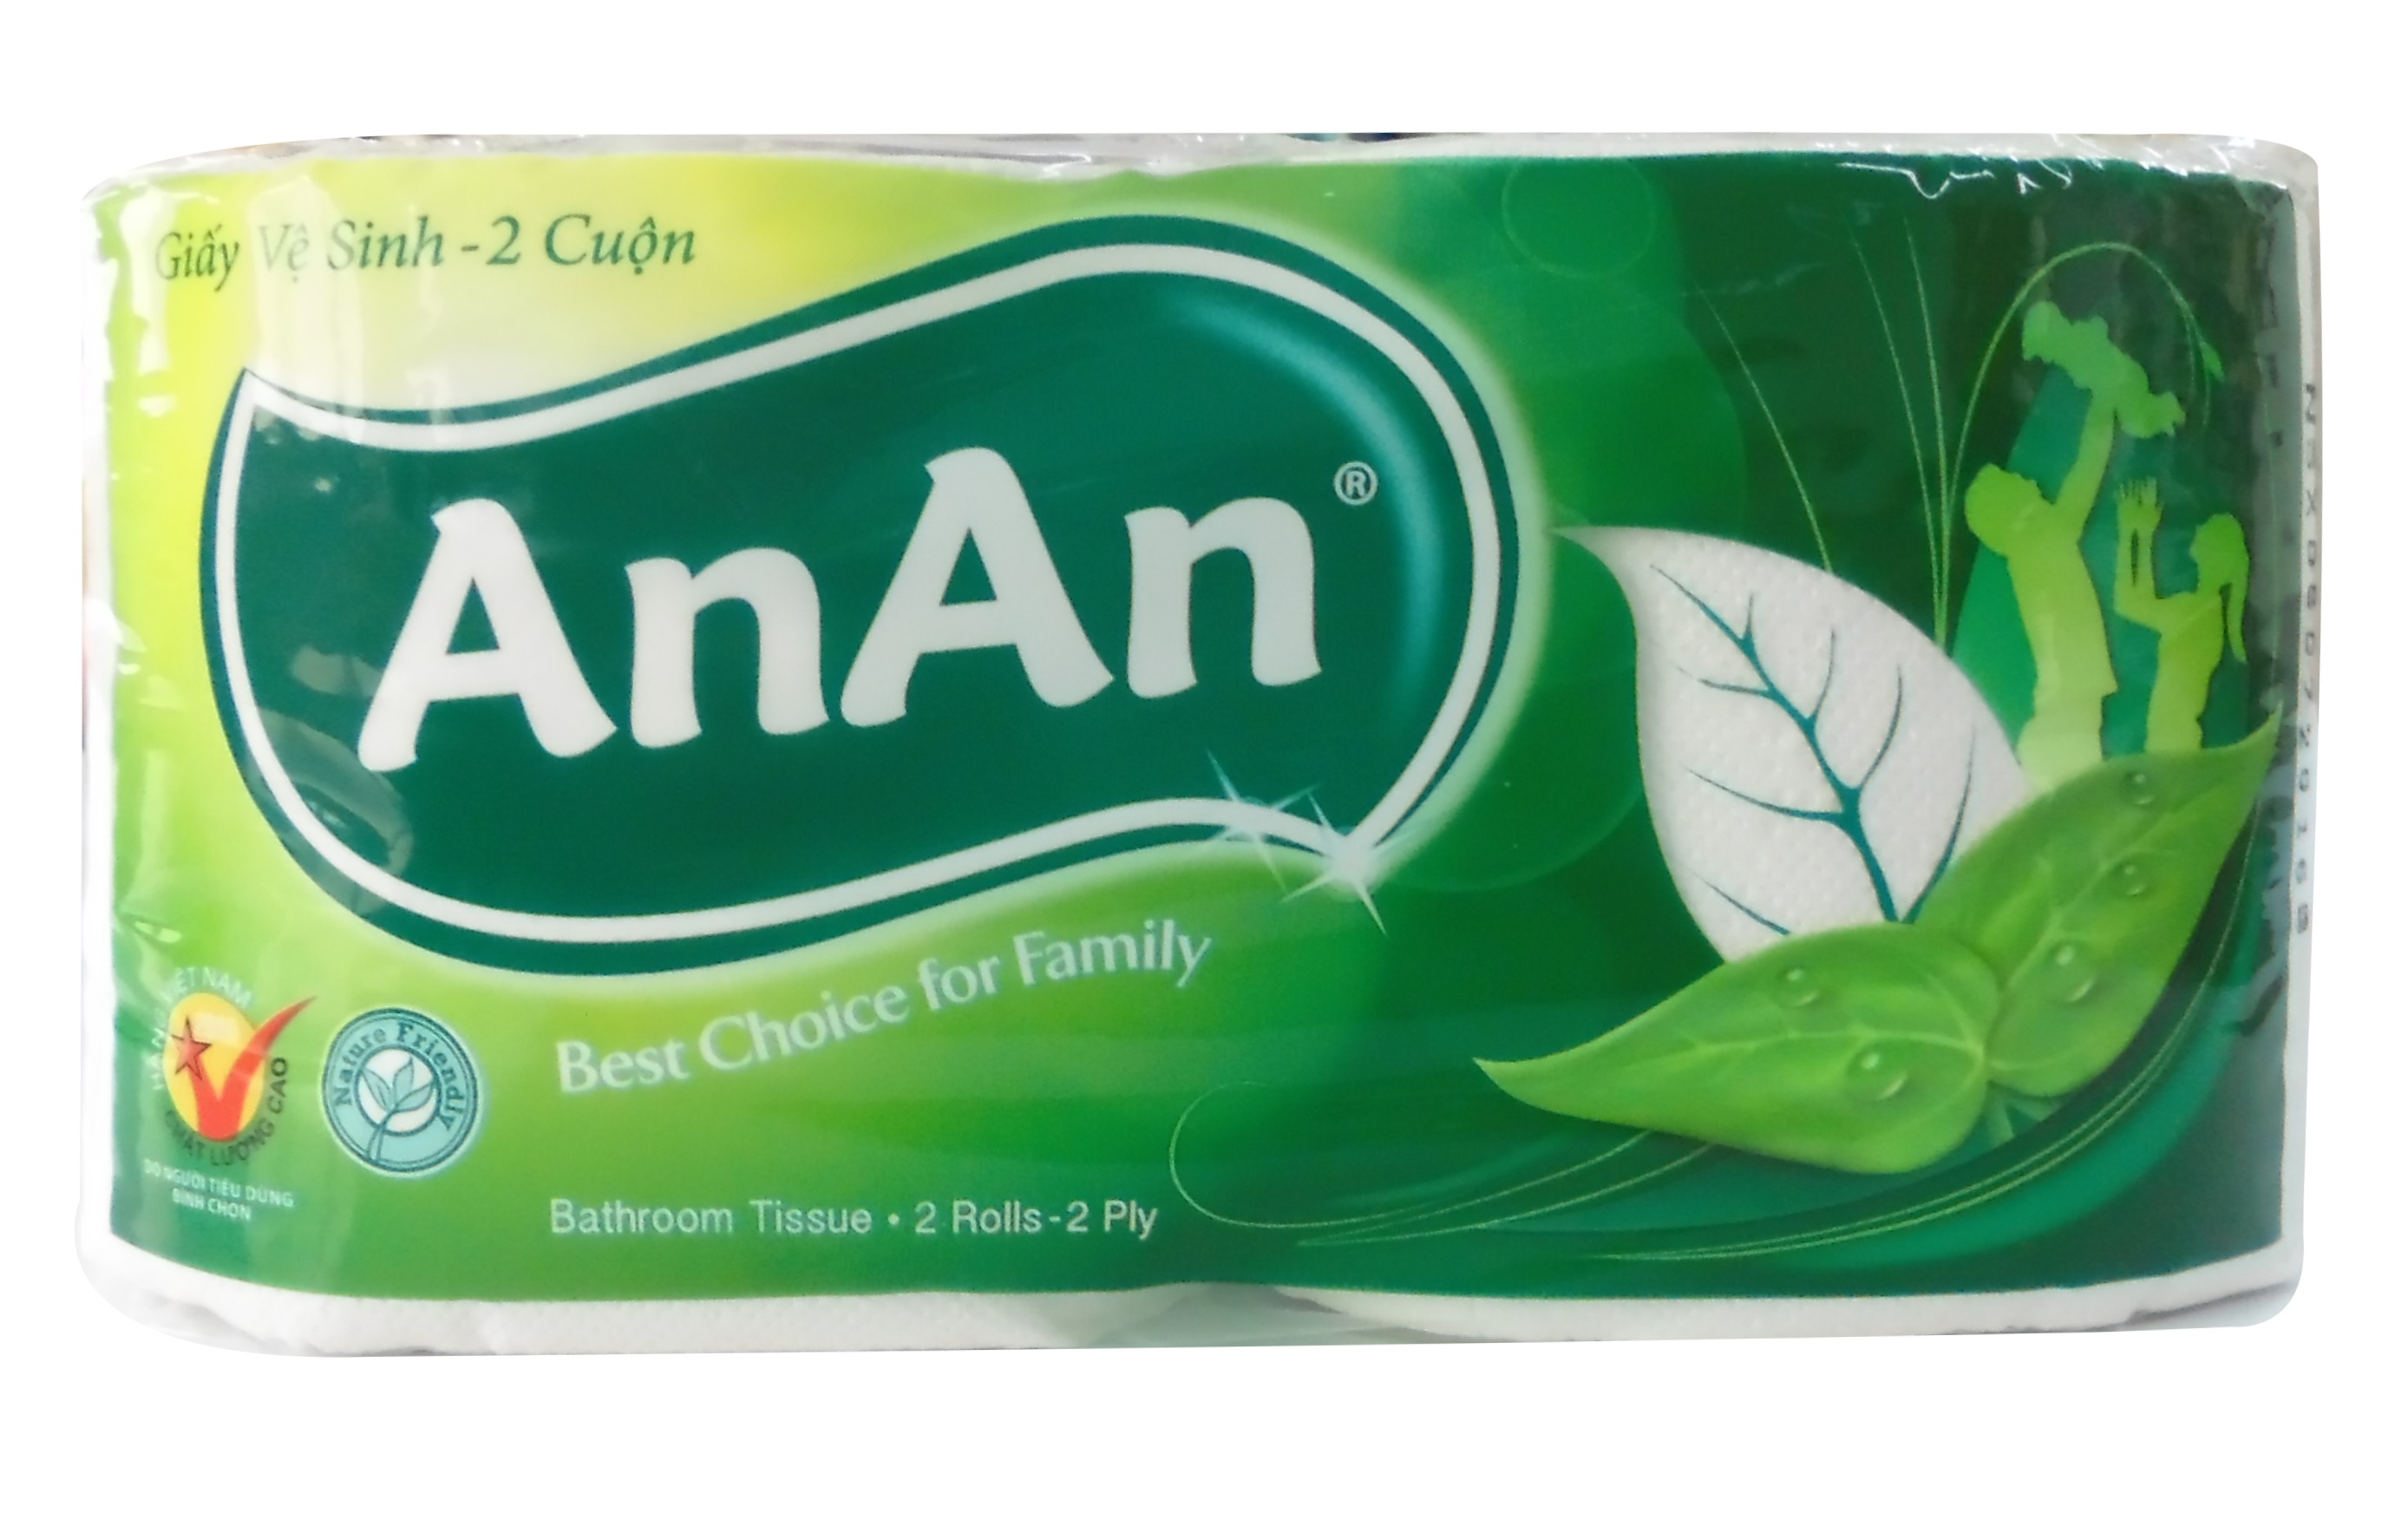 AnAn Bathroom Tissue 2 Rolls x 5